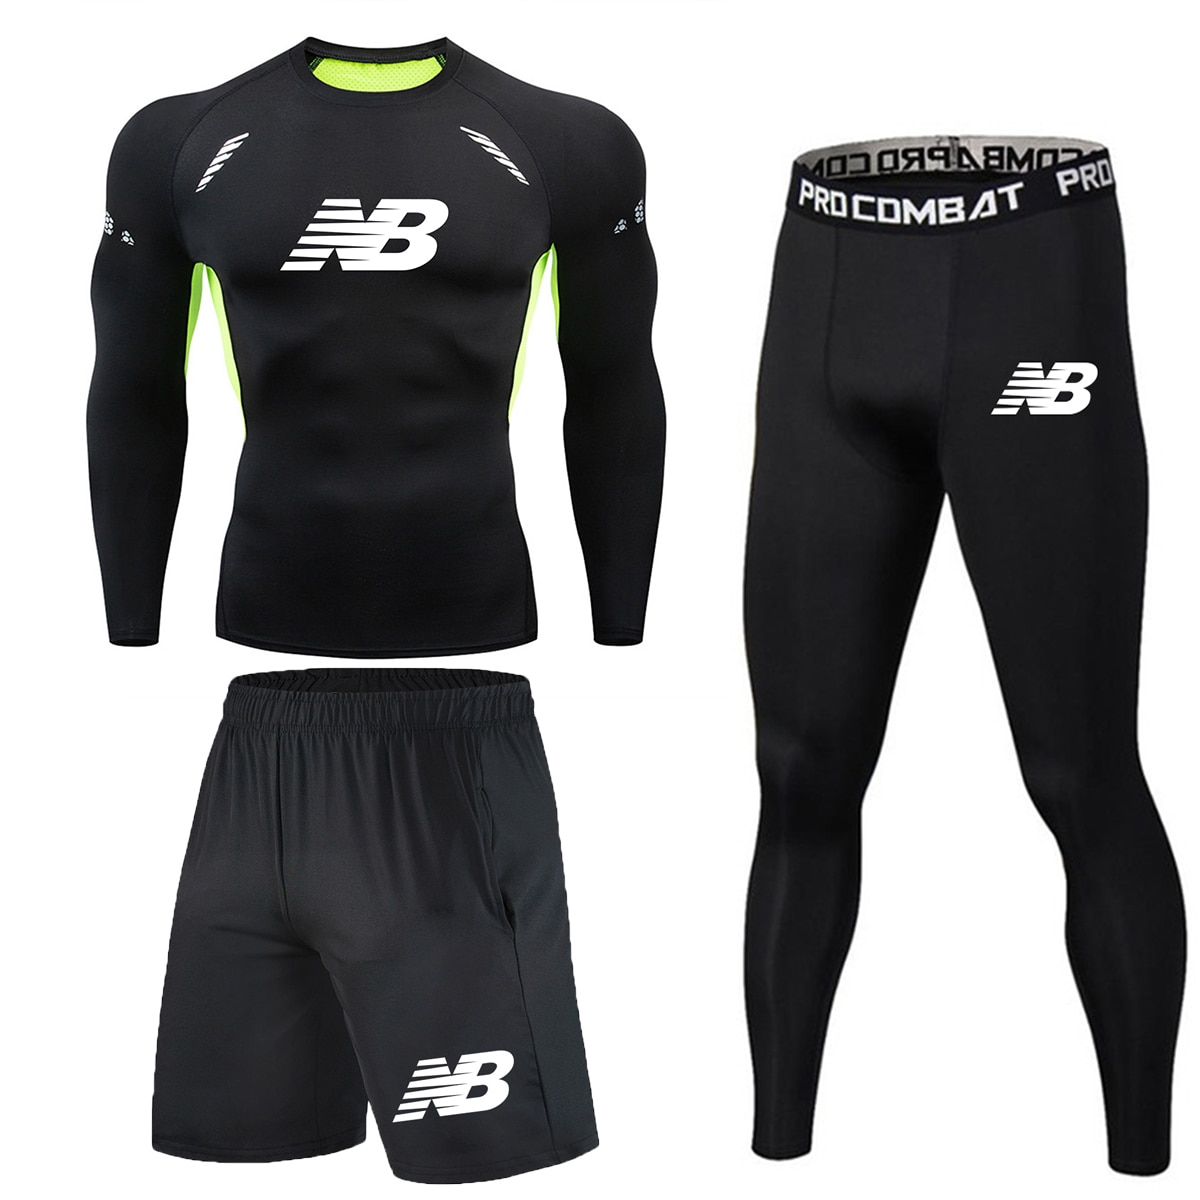 3 pieces/set of quick-drying long-sleeved compression men's sportswear, used for running, gym training, fitness, tennis, running